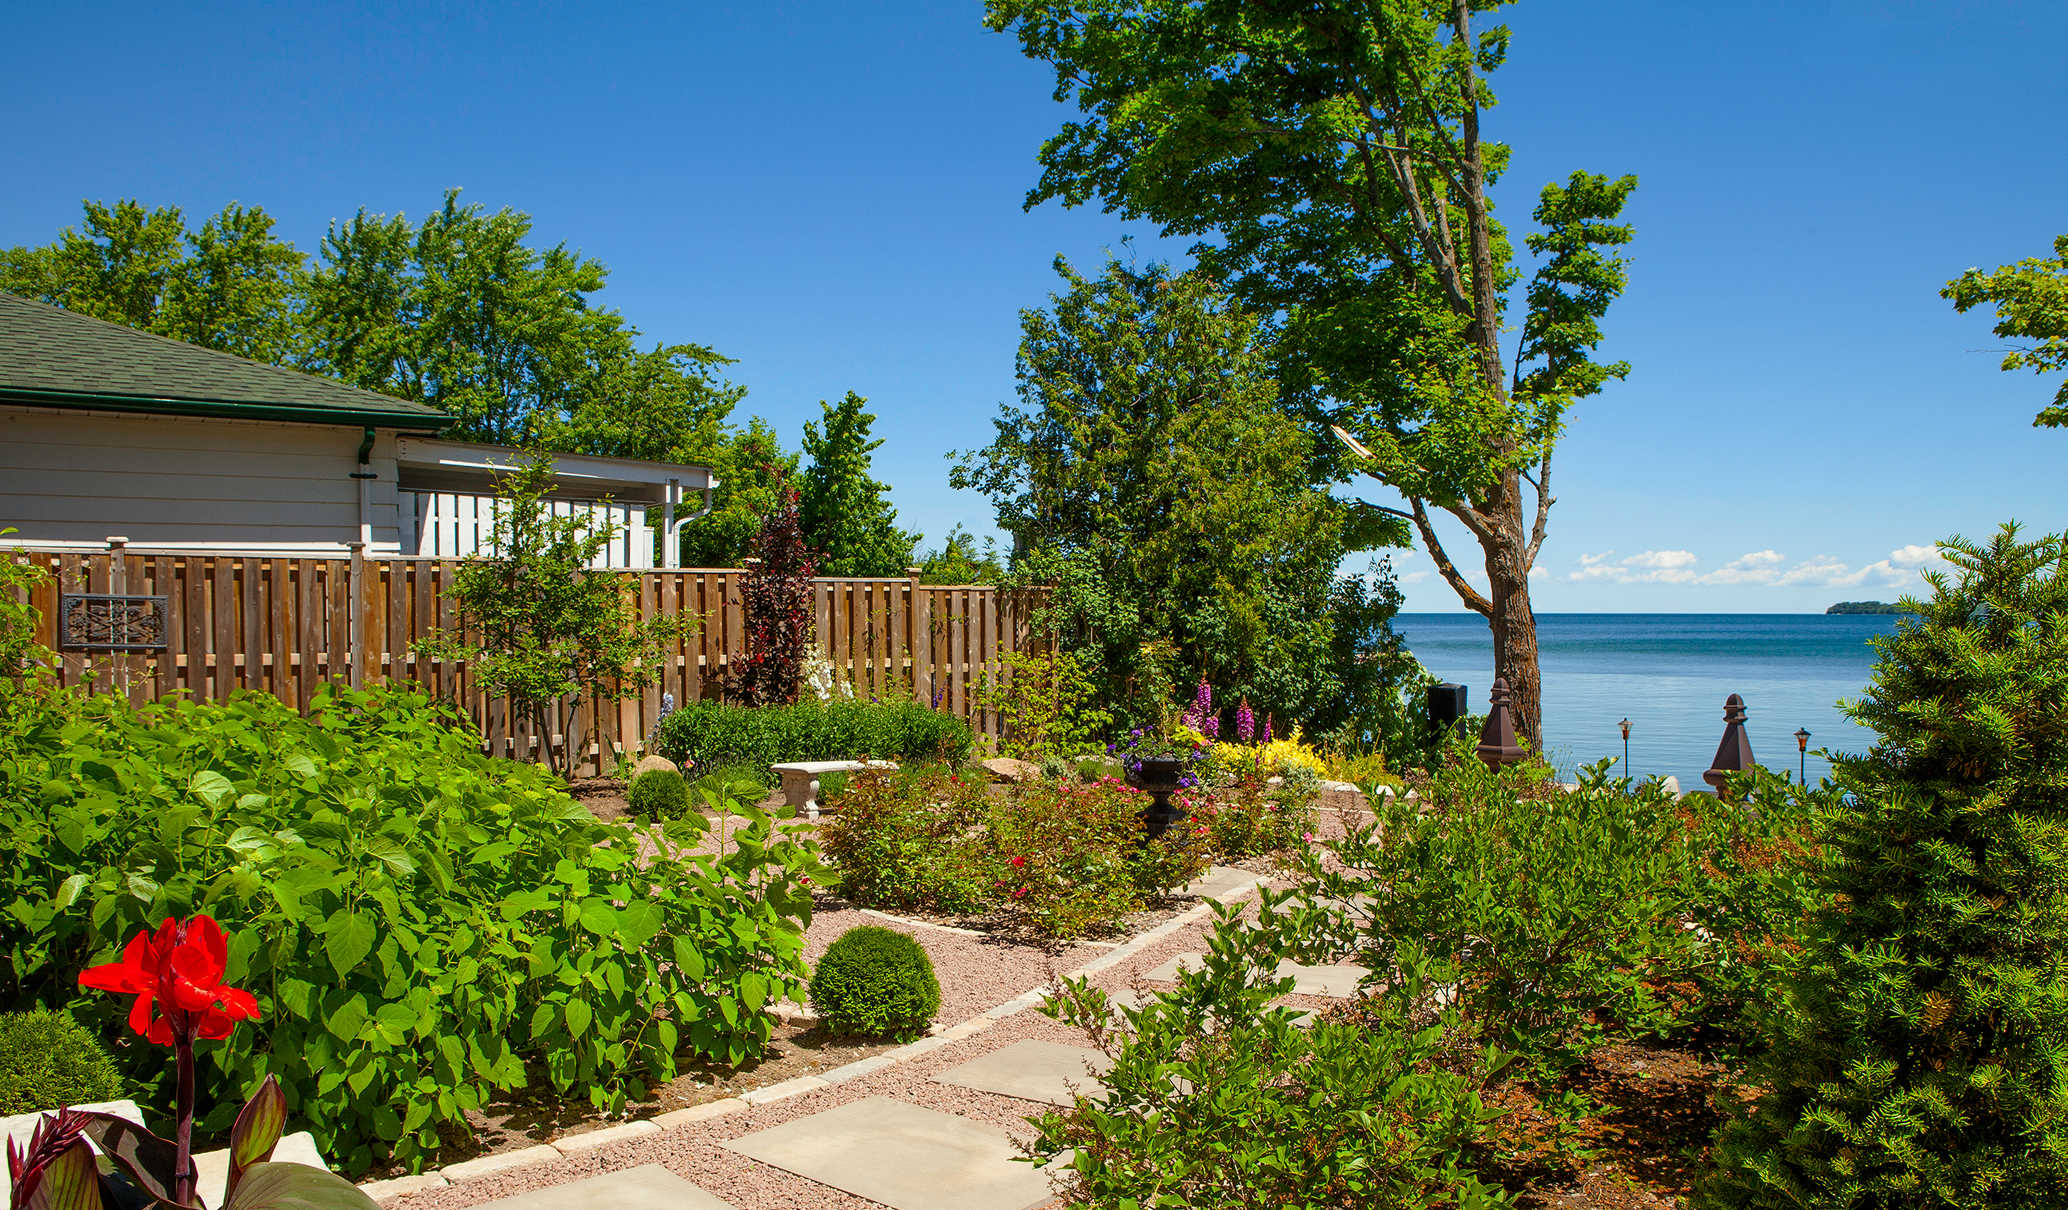 Lake Simcoe Waterfront Private Residence